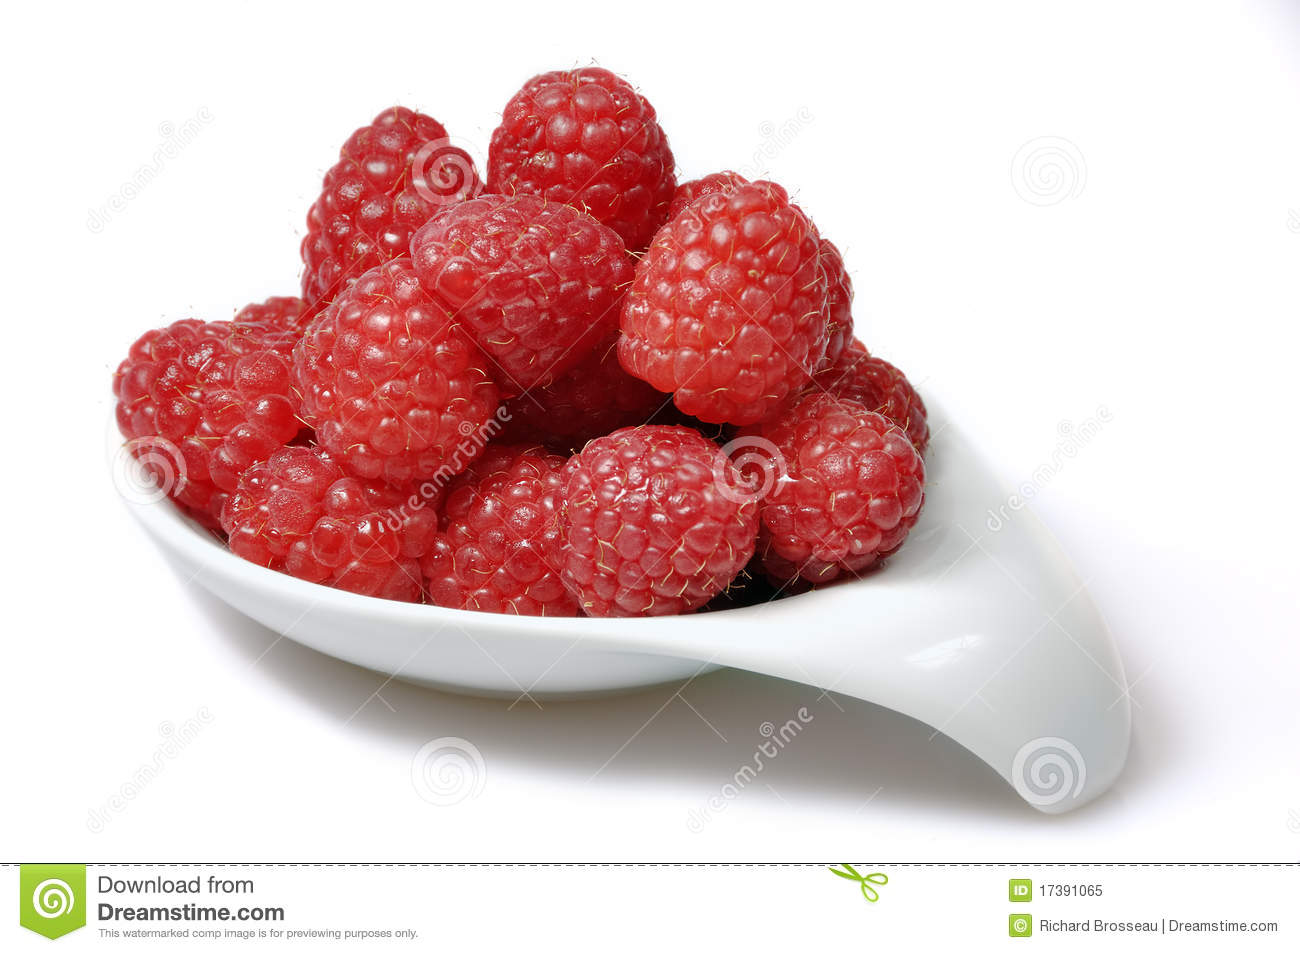 Rasberries in een schotel